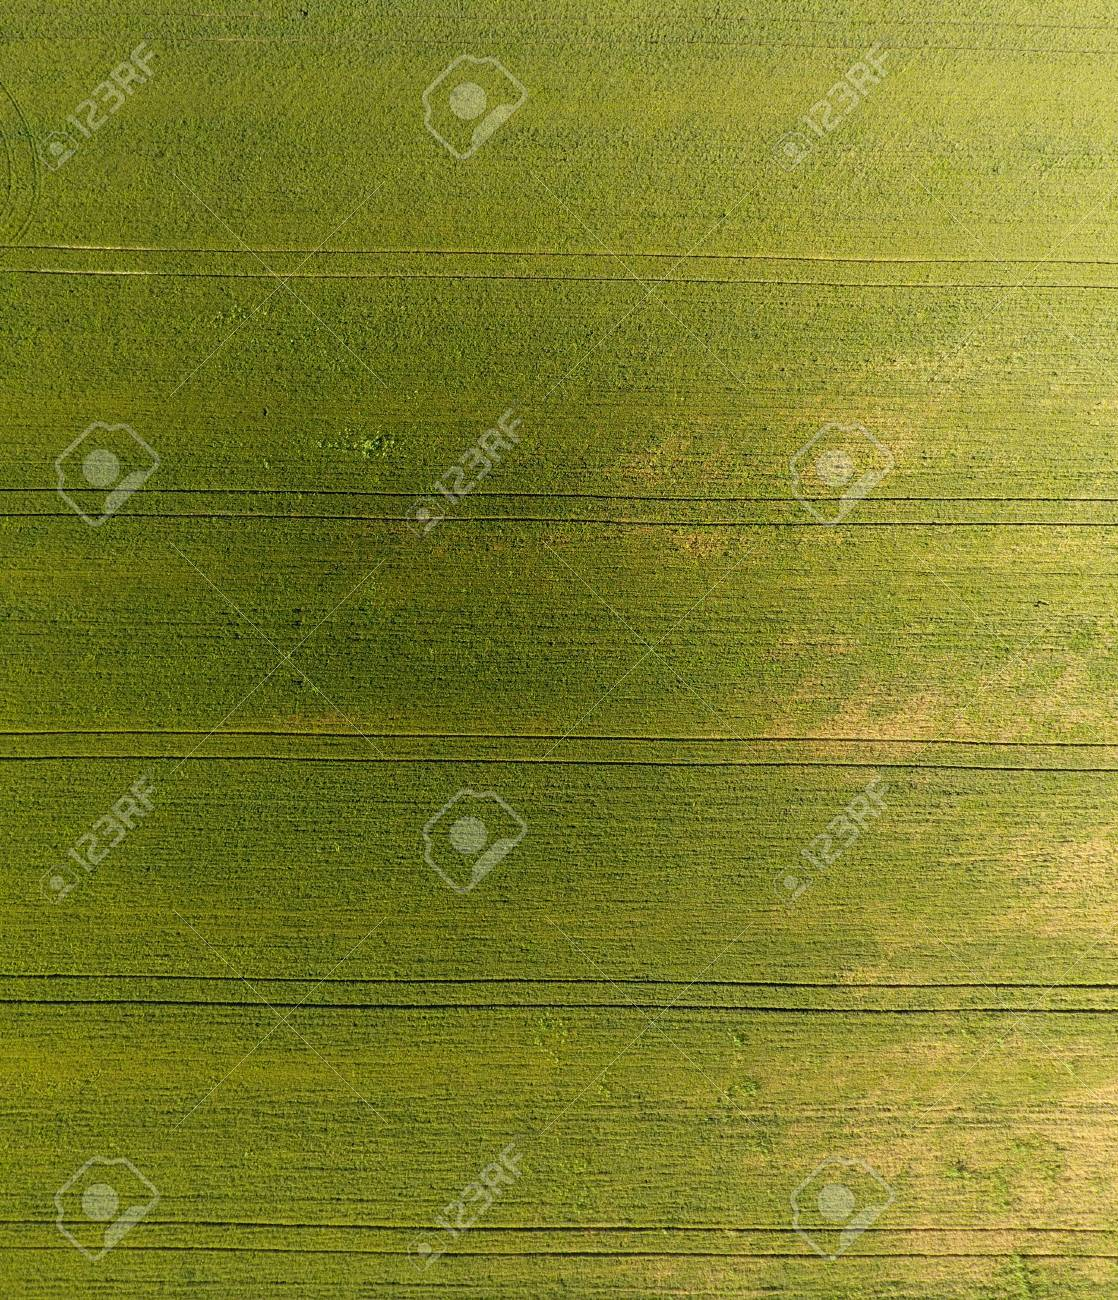 Texture Of Wheat Field Background Of Young Green Wheat On The 1118x1300